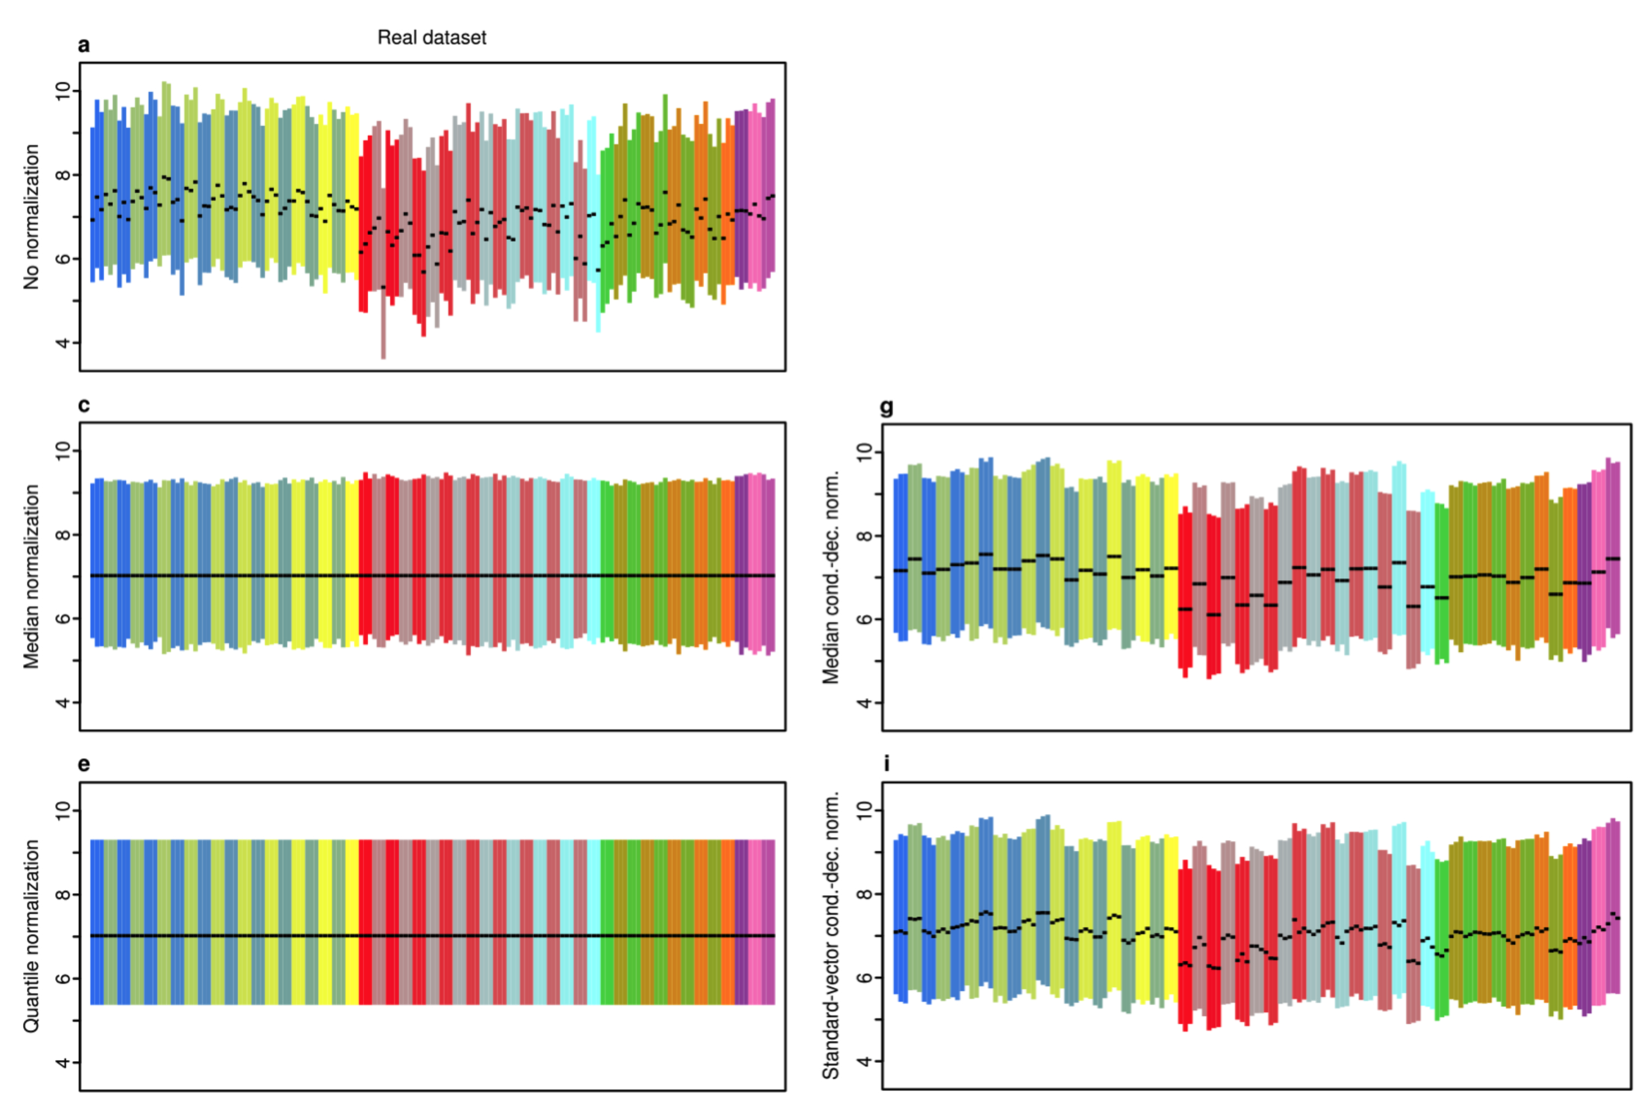 The image modified from Figure 1 in Roca et al. 2015 shows expression levels for three replicates of each of experimental treatments represented by different colors. The black lines represent the medians. Each plot represents a different normalization method.